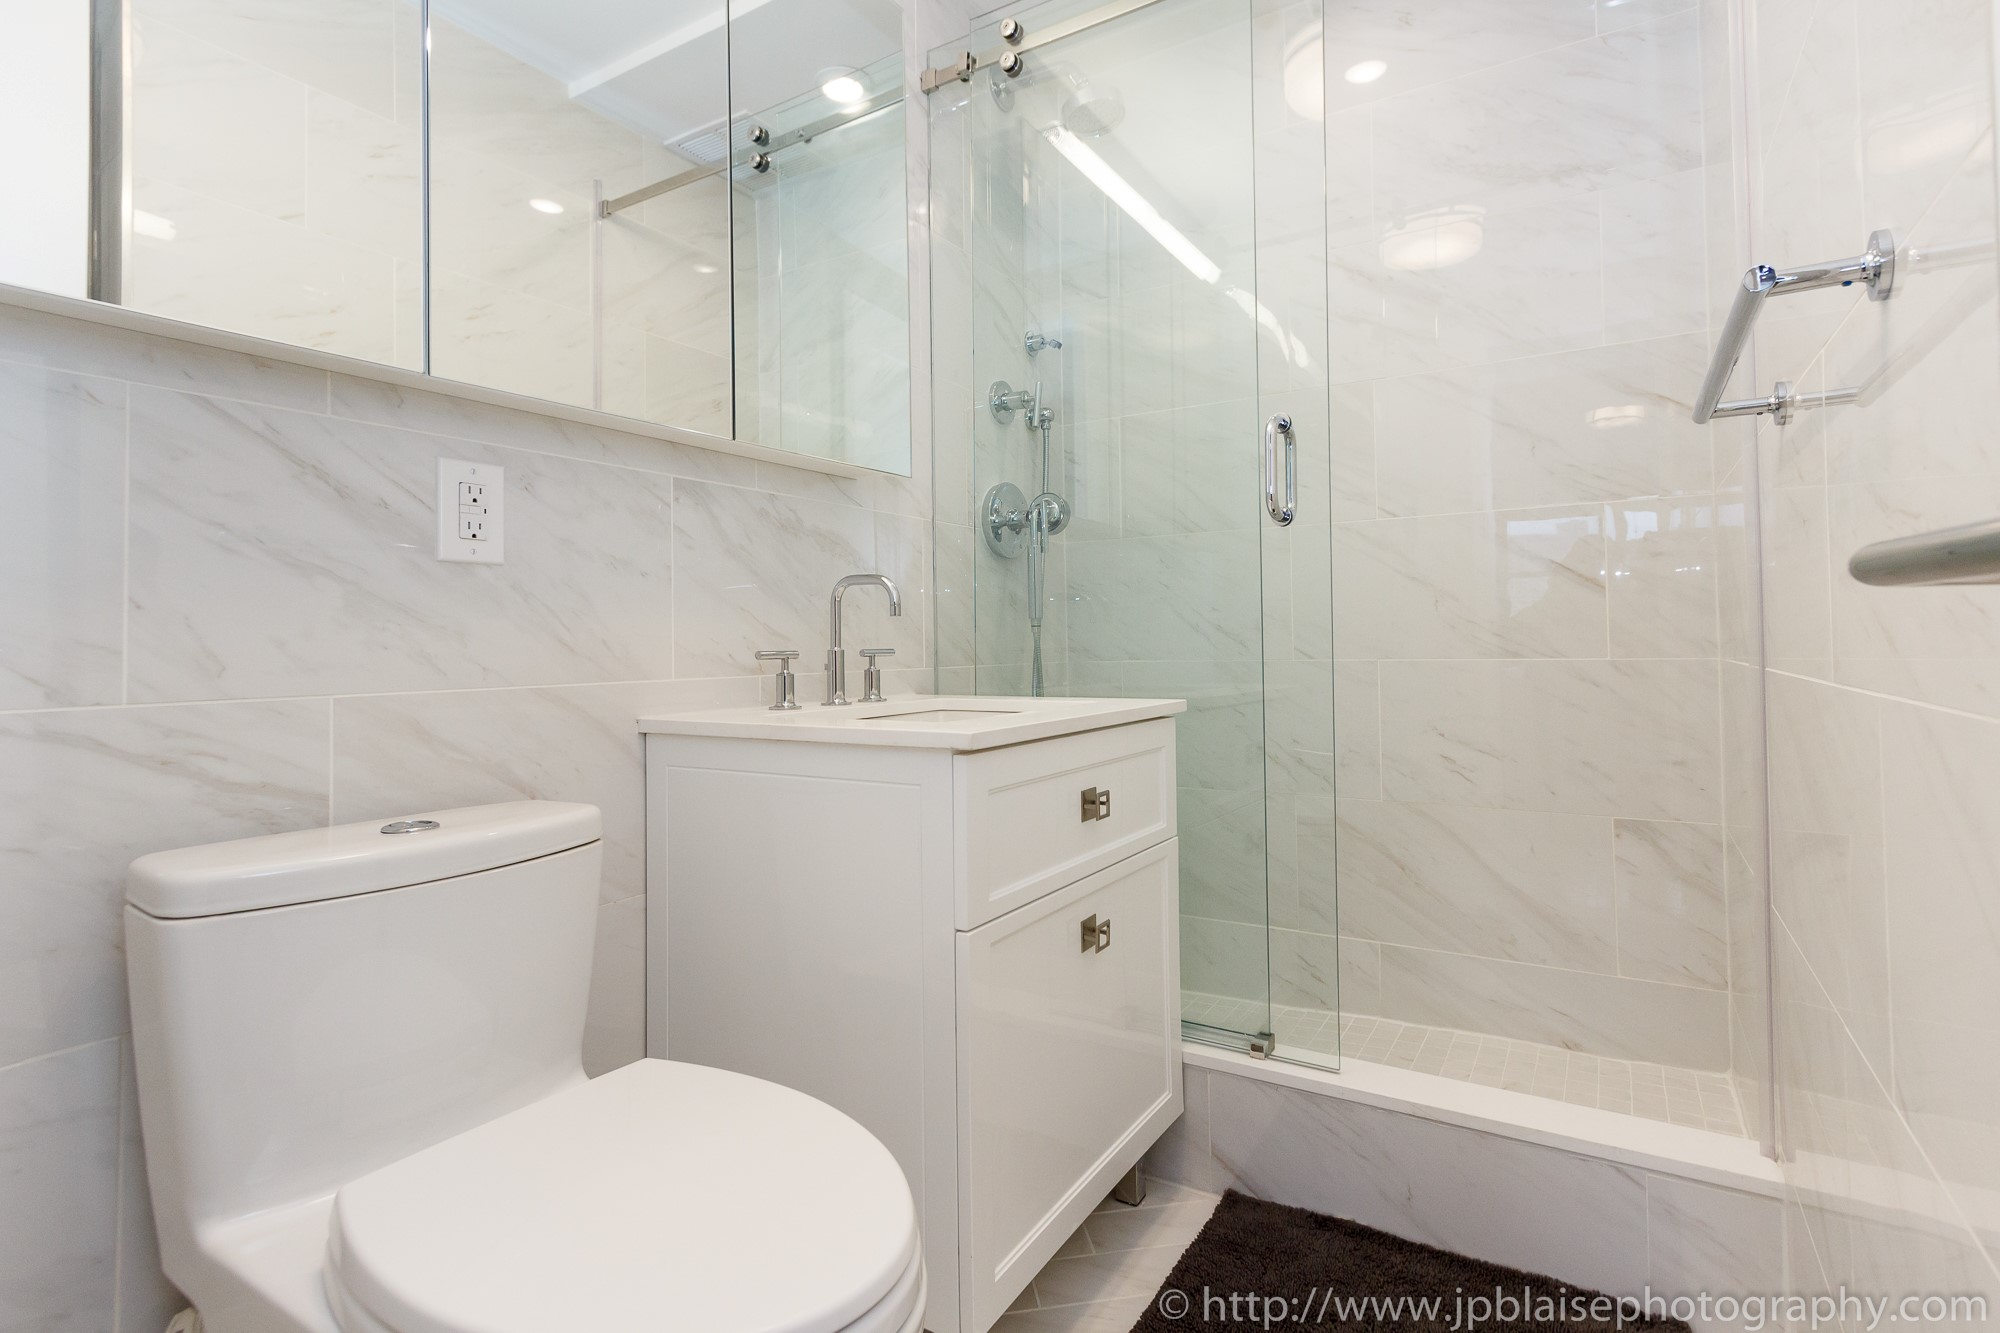 Bathroom Fixtures Upper East Side Nyc new york city interior photography session: modern one bedroom